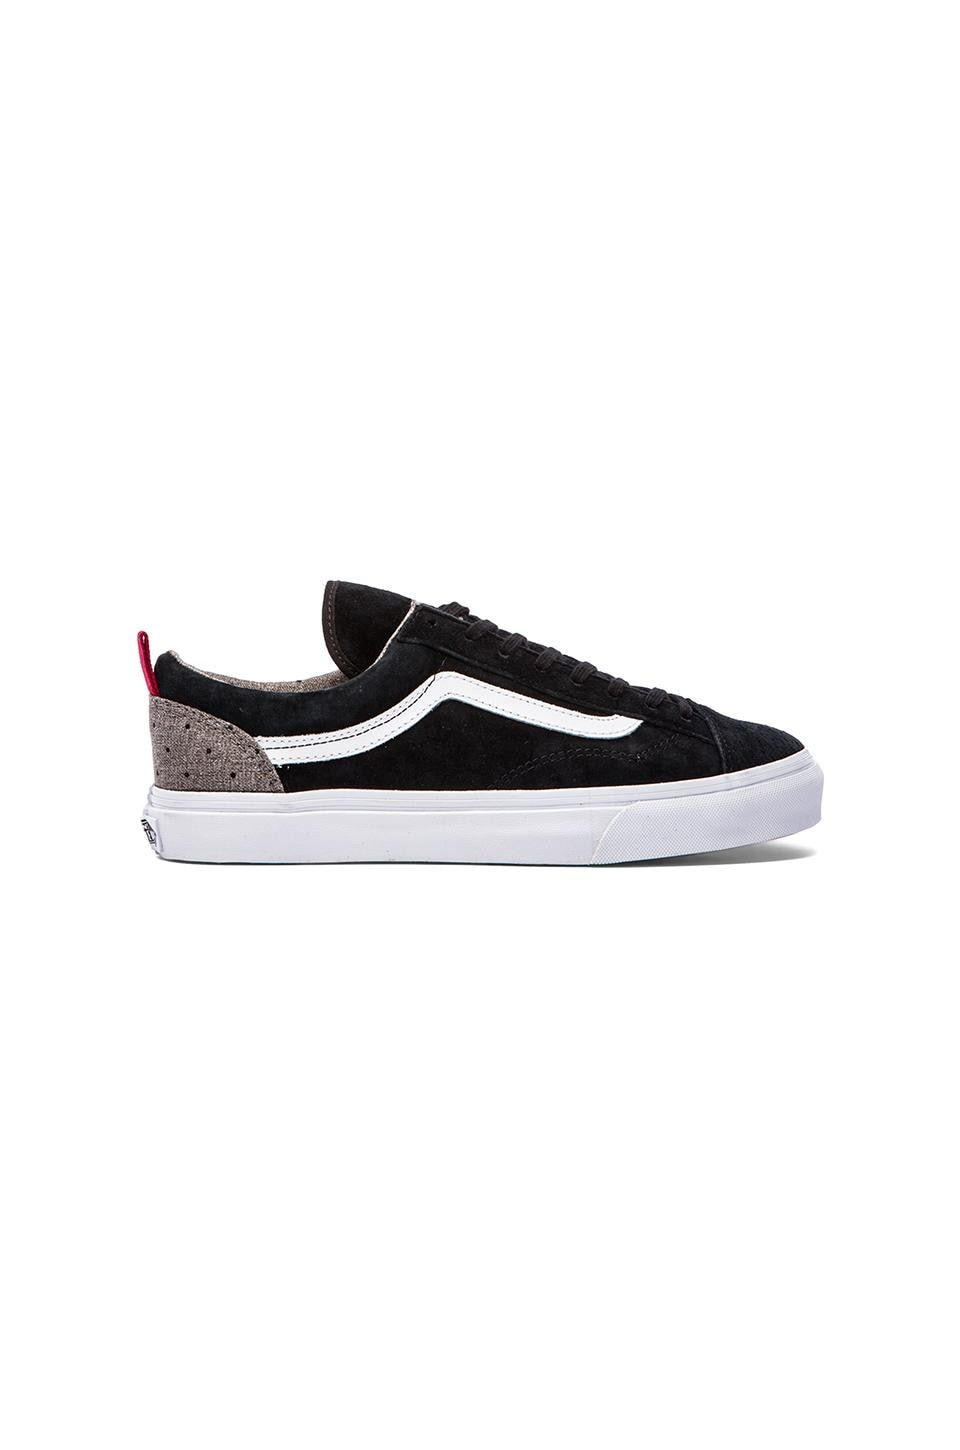 Vans California Style 36 in Black